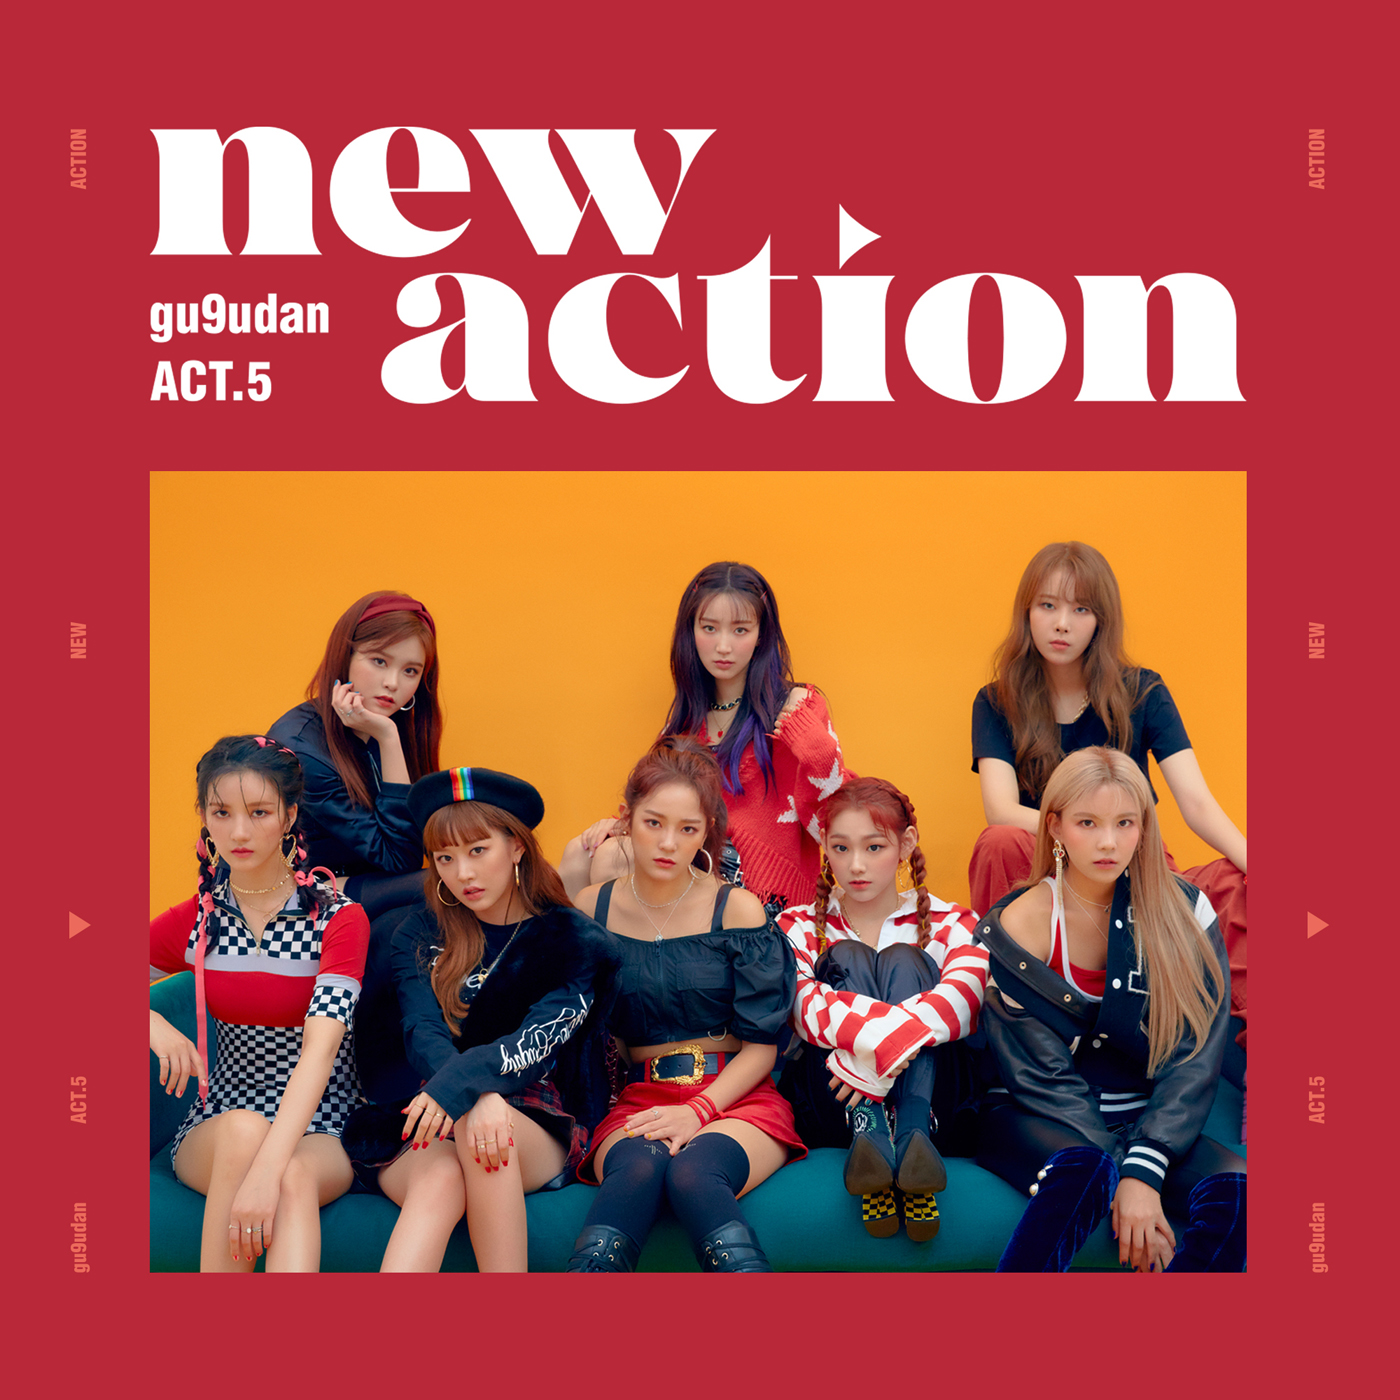 20181108.0332.02 gugudan - ACT.5 New Action cover.jpg